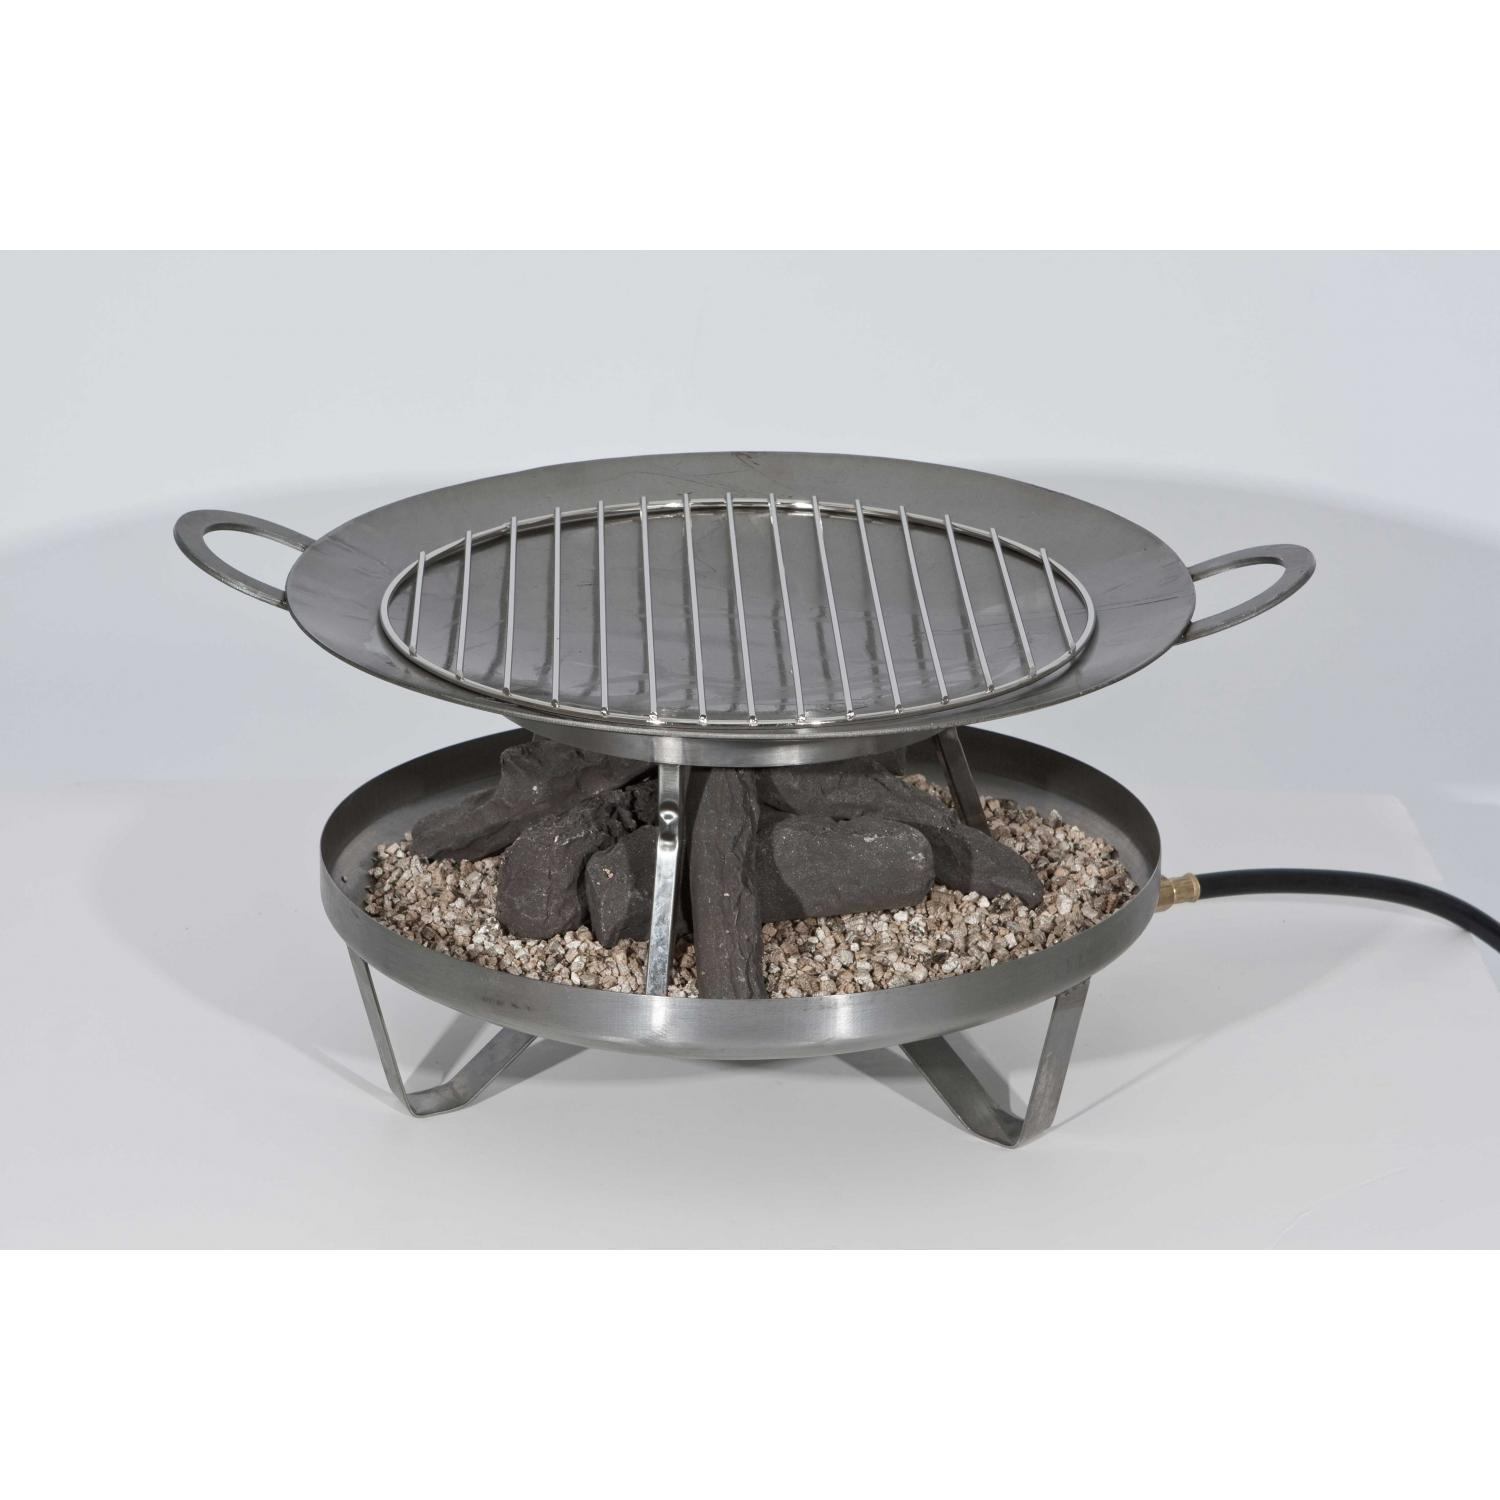 Fire Sense Stainless Steel Campfire Cook-All For New Campfire Fire Pits